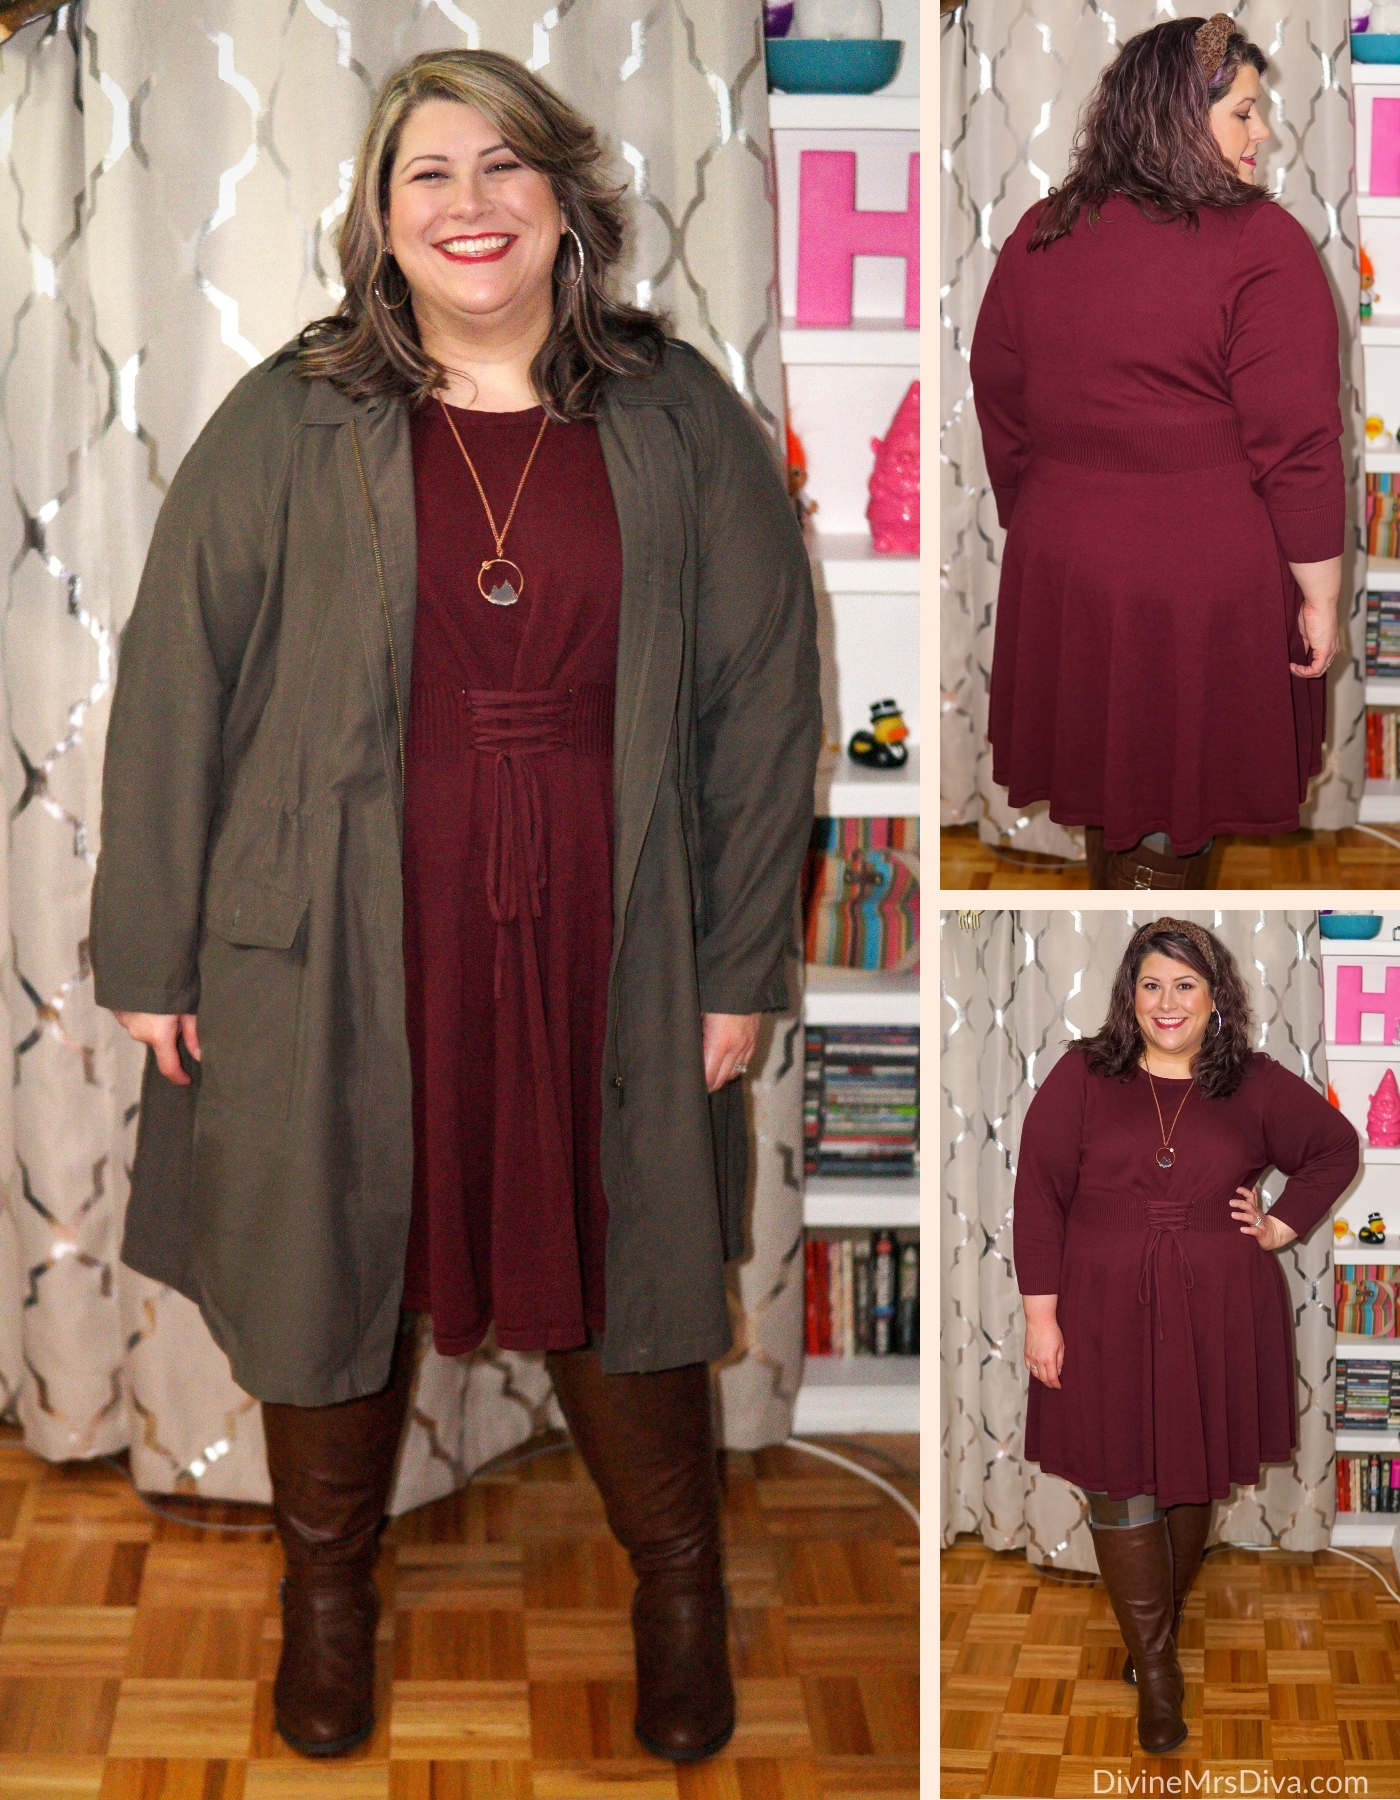 Reviewing a couple pieces from the 2020 Torrid Outlander Collection -  DivineMrsDiva.com #psblogger #plussize #styleblogger #plussizeblogger #plussizefashion #psootd #ootd #plussizeclothing #outfit #style #40style #40plusblogger #FallStyle #WinterStyle #Torrid #Outlander #OutlanderFashion